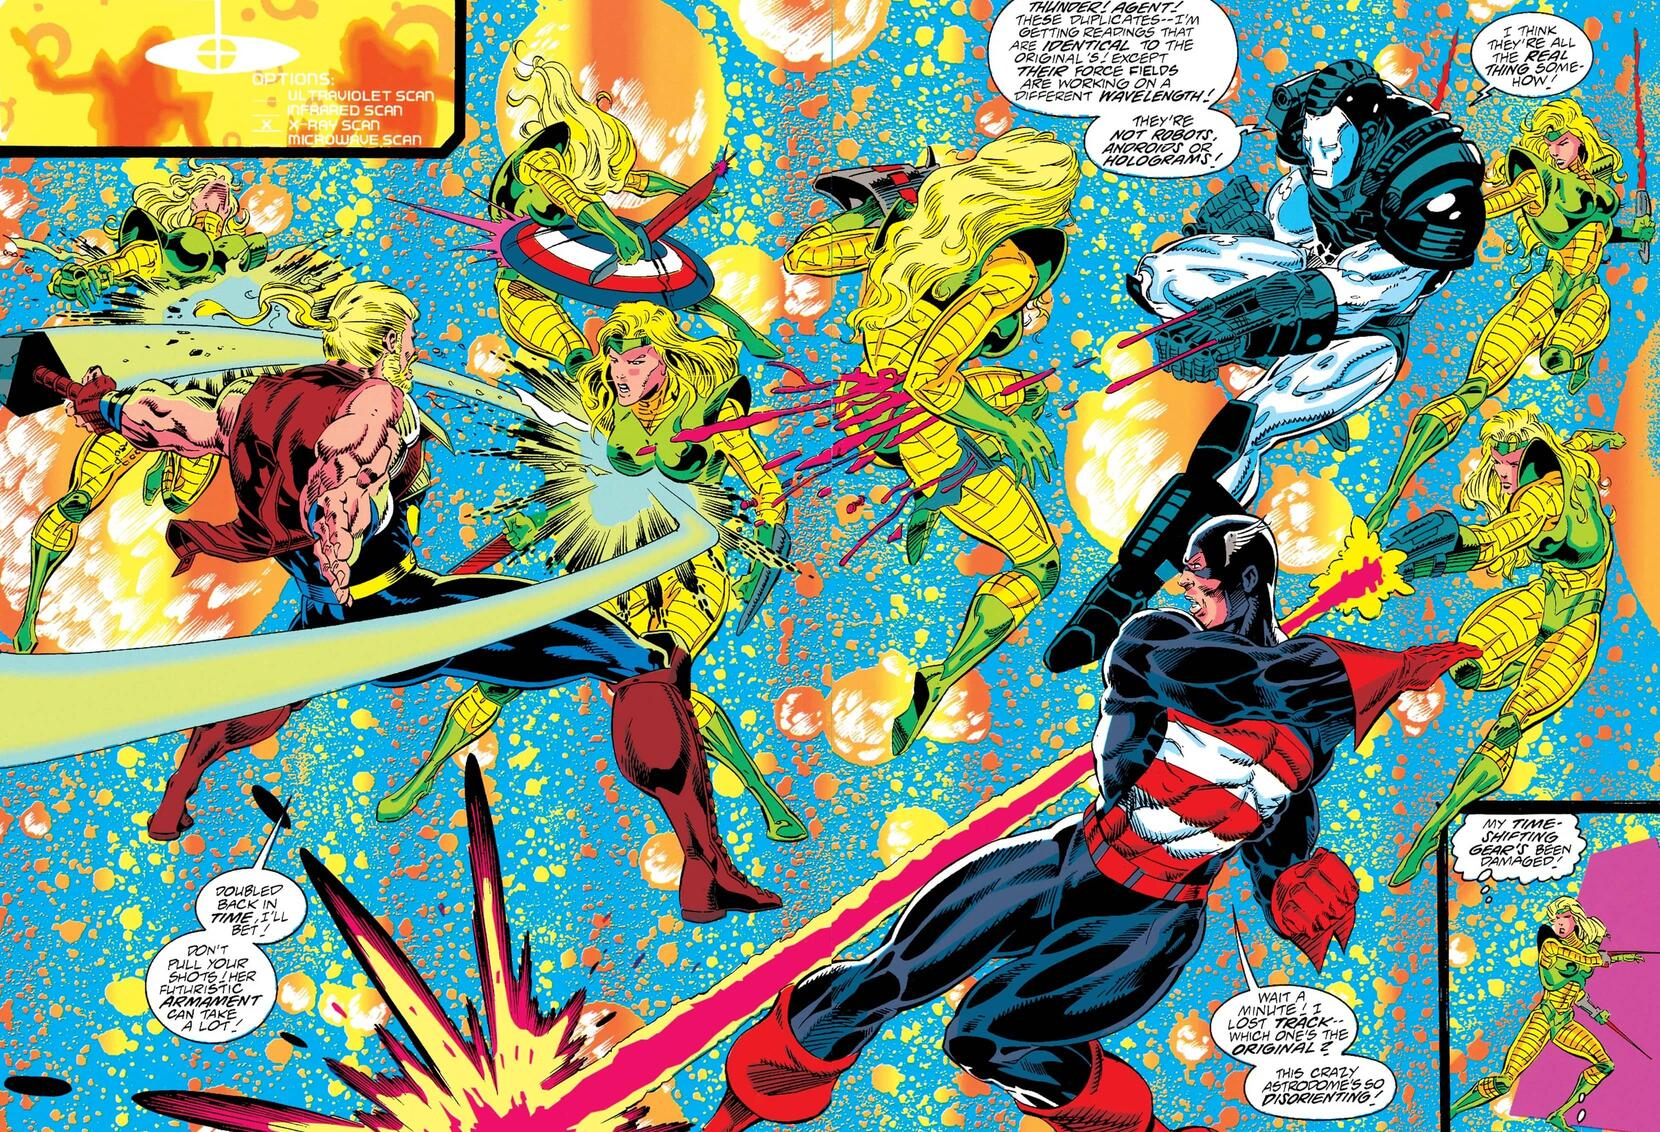 Ravonna fights the Avenger with time duplicates in AVENGERS: THE TERMINATRIX OBJECTIVE (1993) #1.